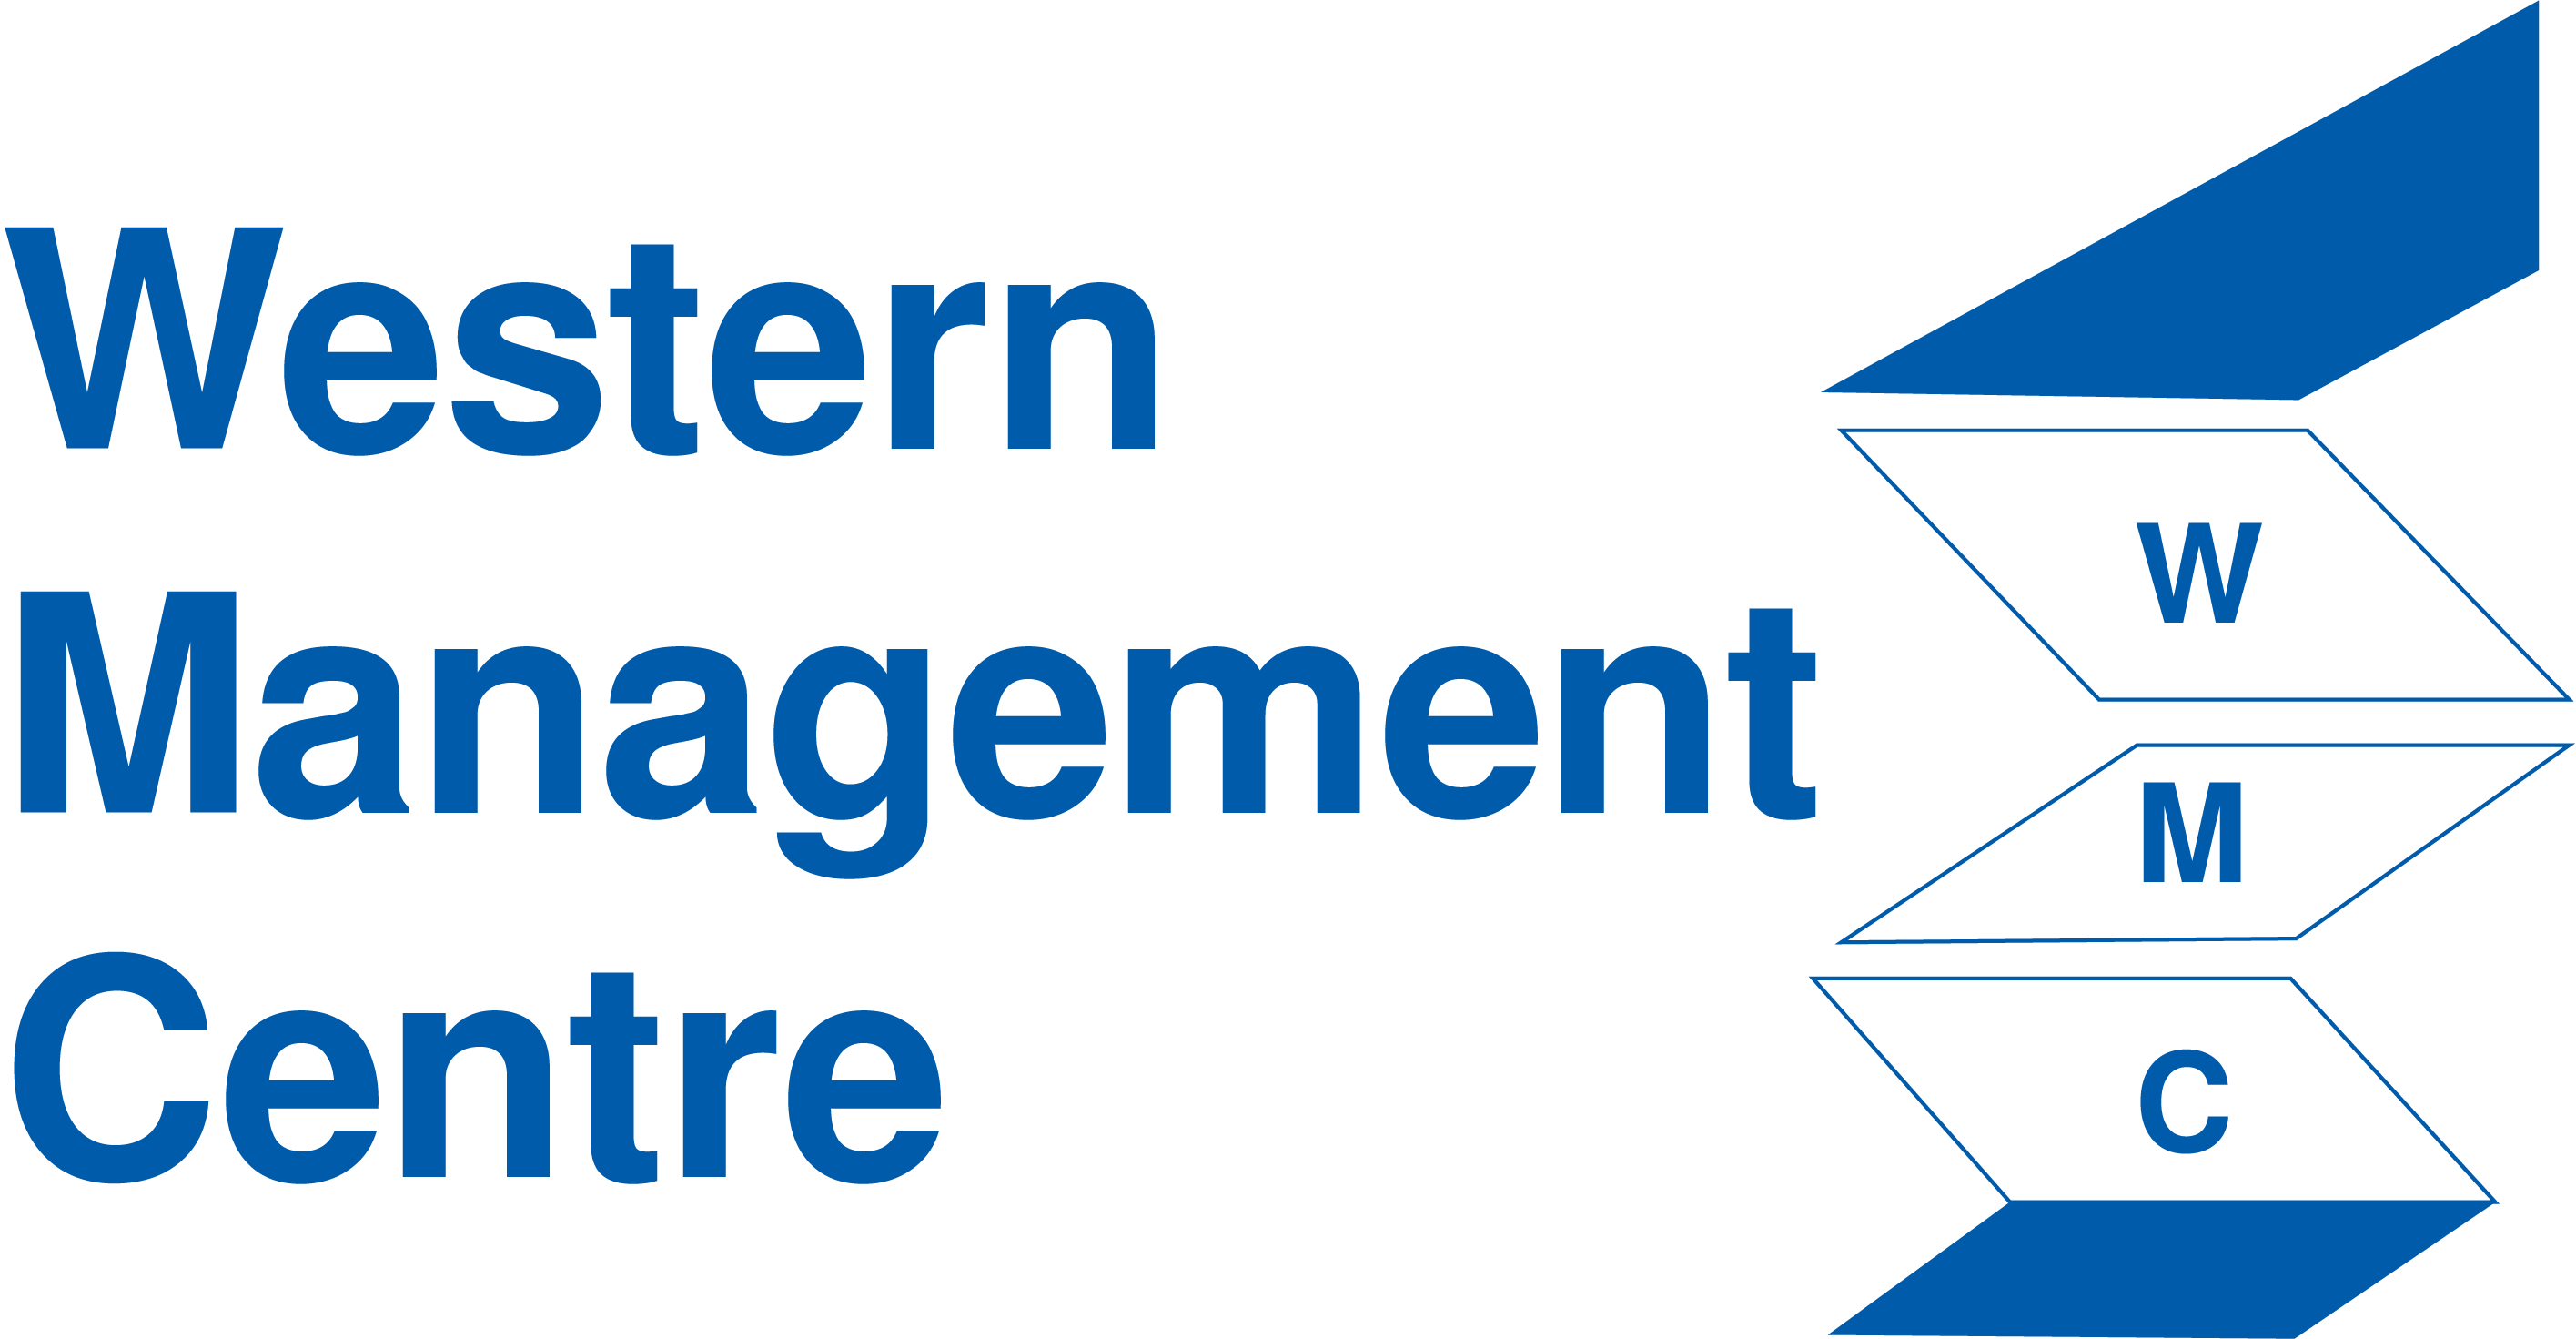 Western Management Centre | Training in Galway